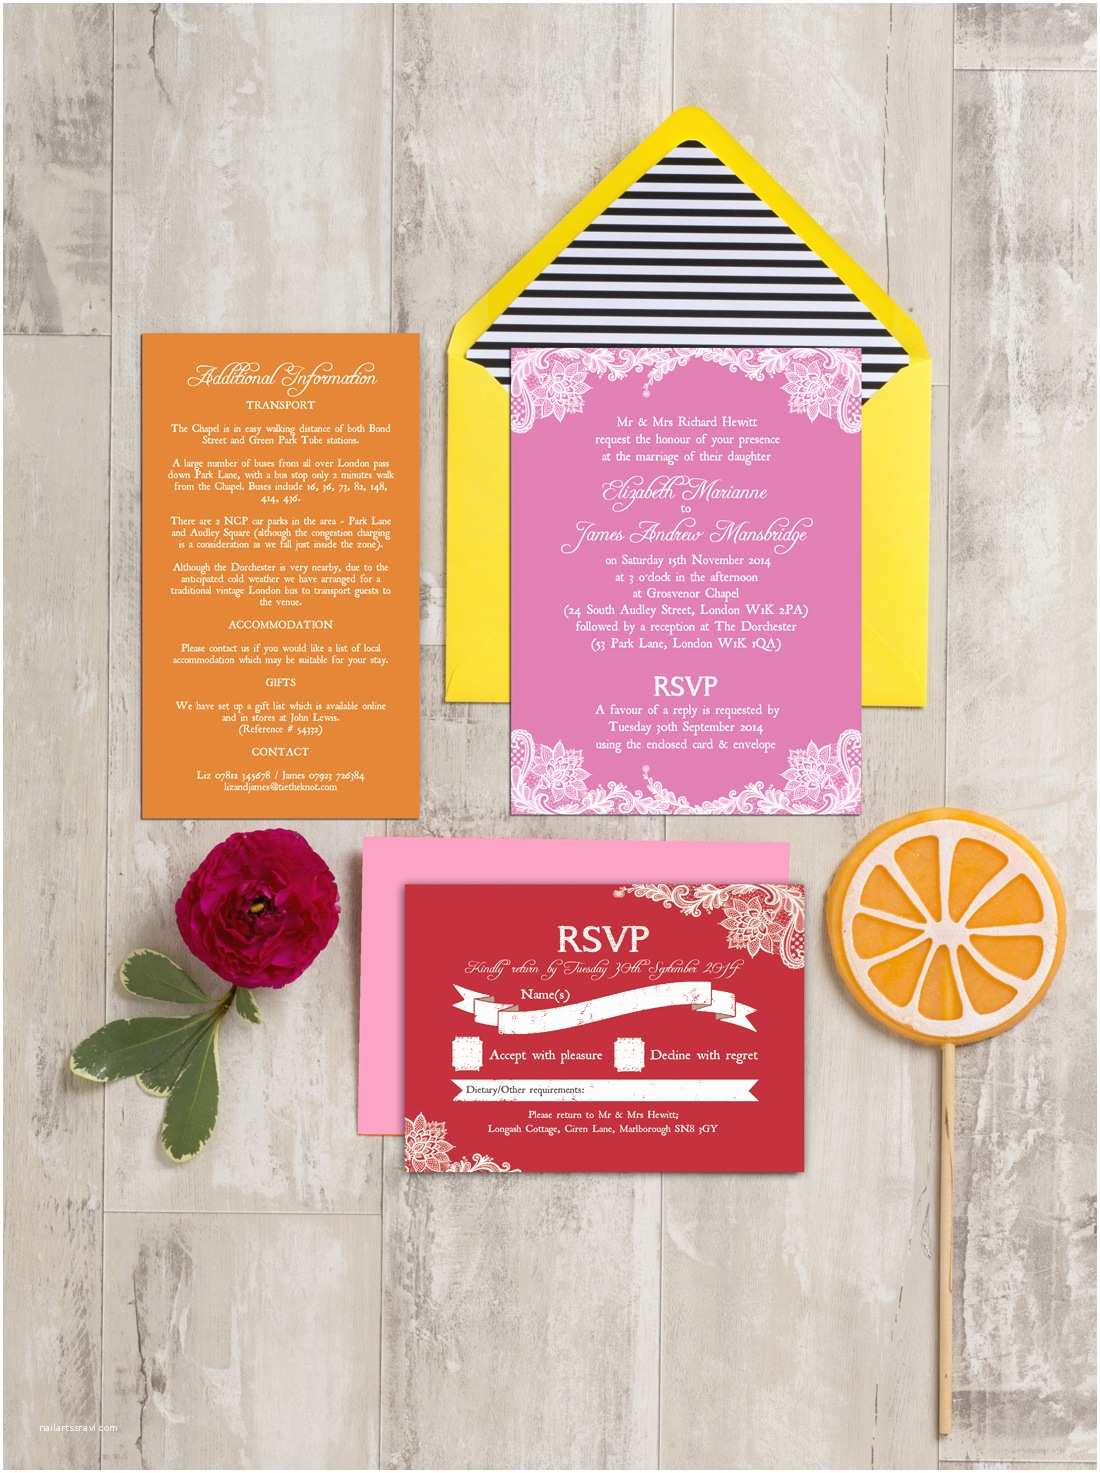 Wedding Invitation Advice Wedding Invitation Wording & Etiquette Advice